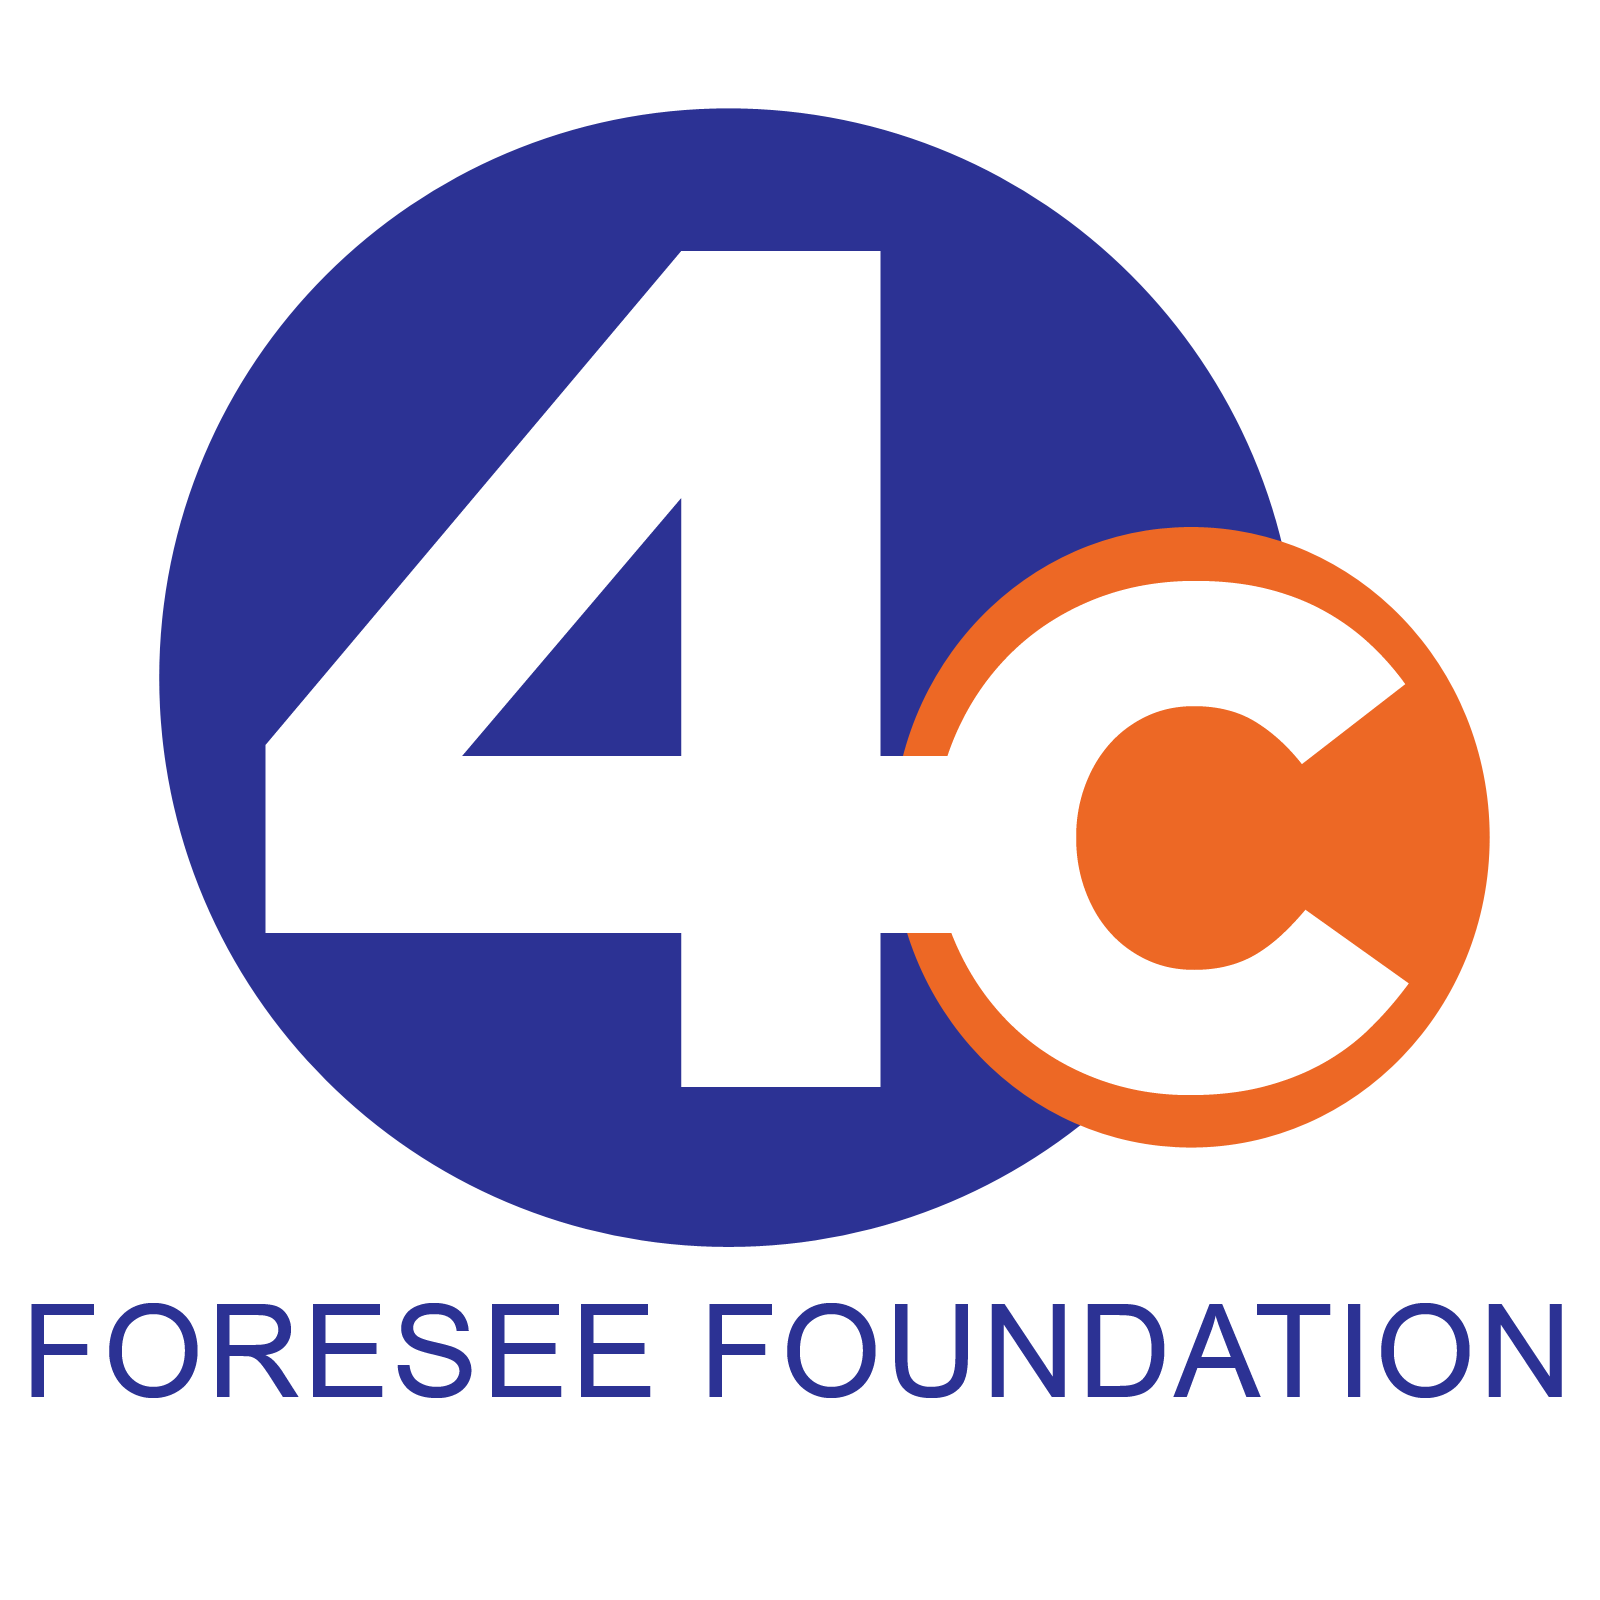 Foresee Foundation